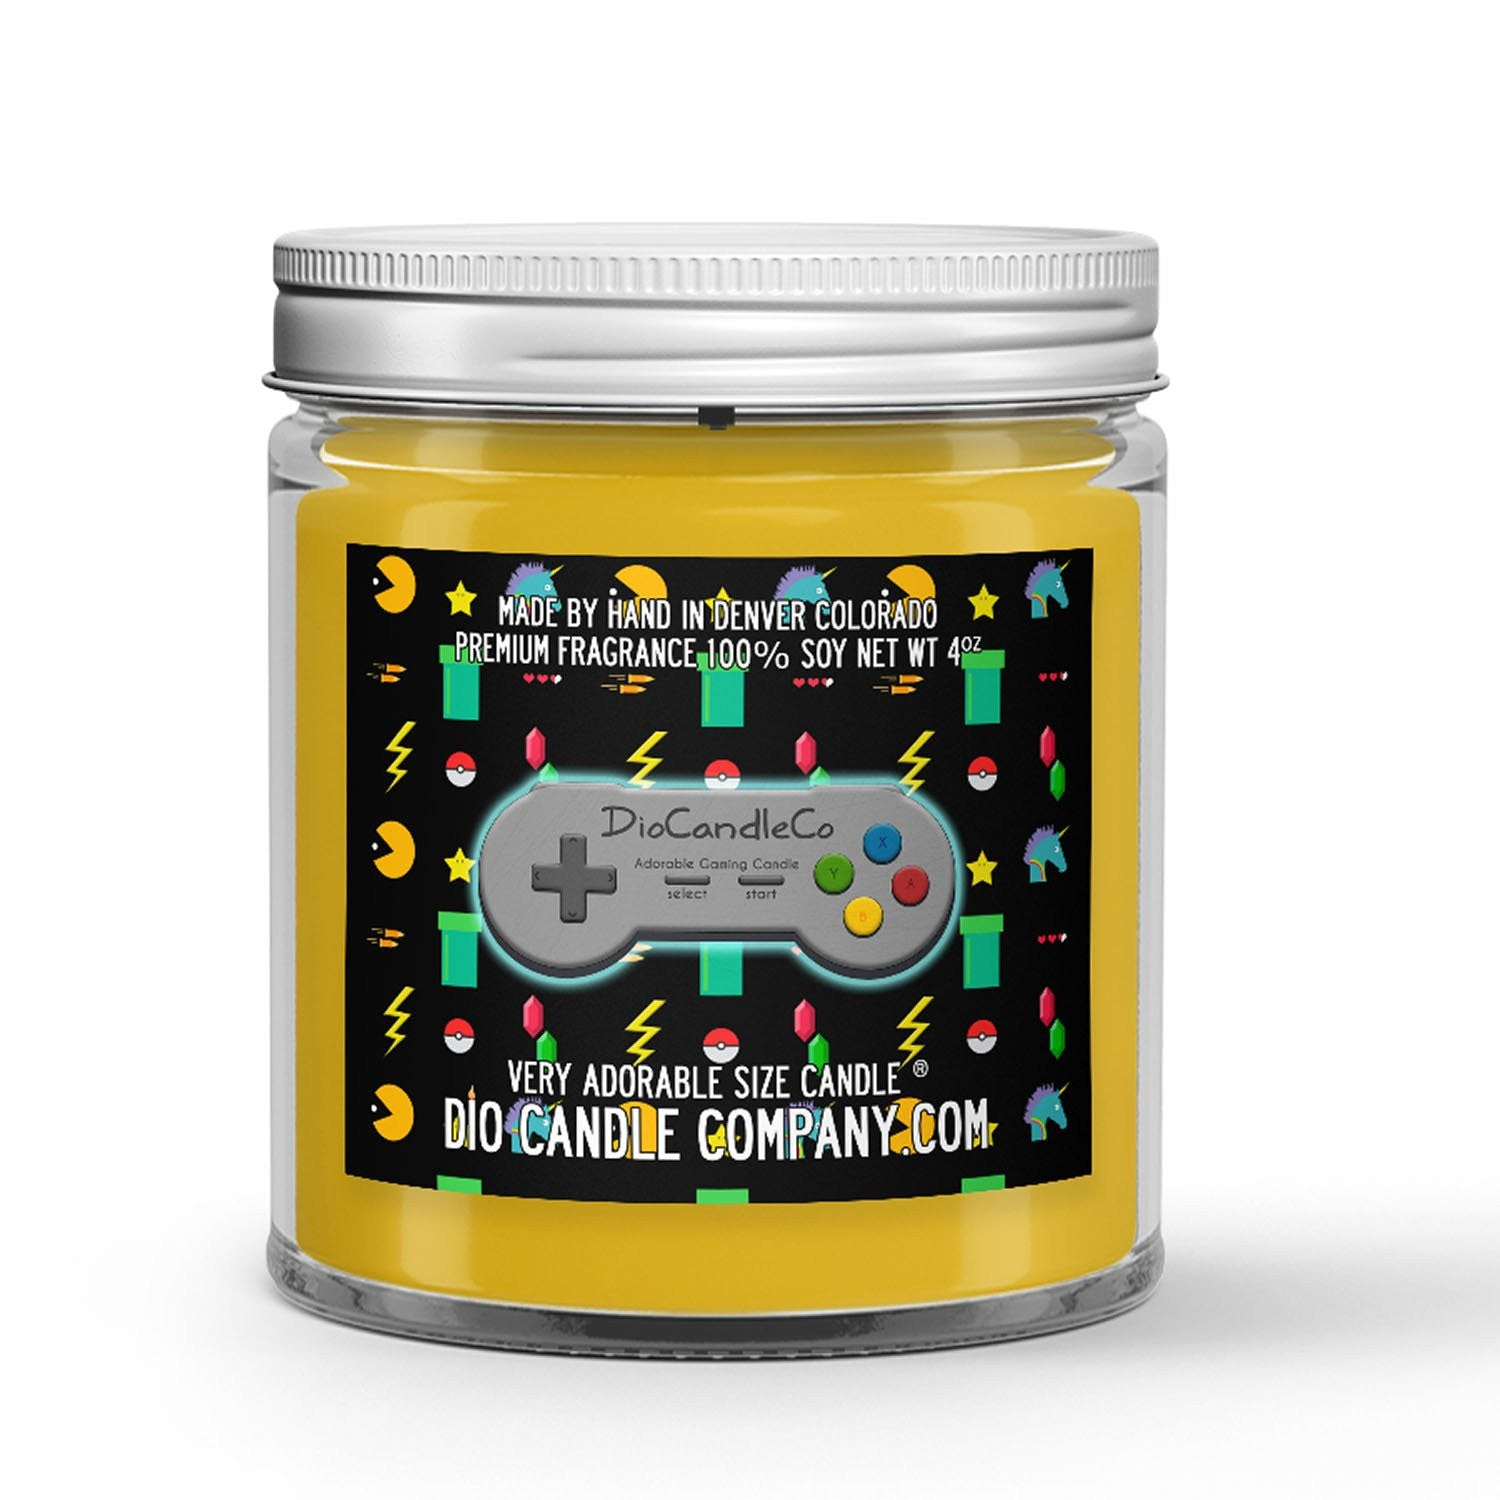 Personalized Gamer Tag Candle - Zesty Ginger-Ale - 4oz Very Adorable Size Candle® - Dio Candle Company